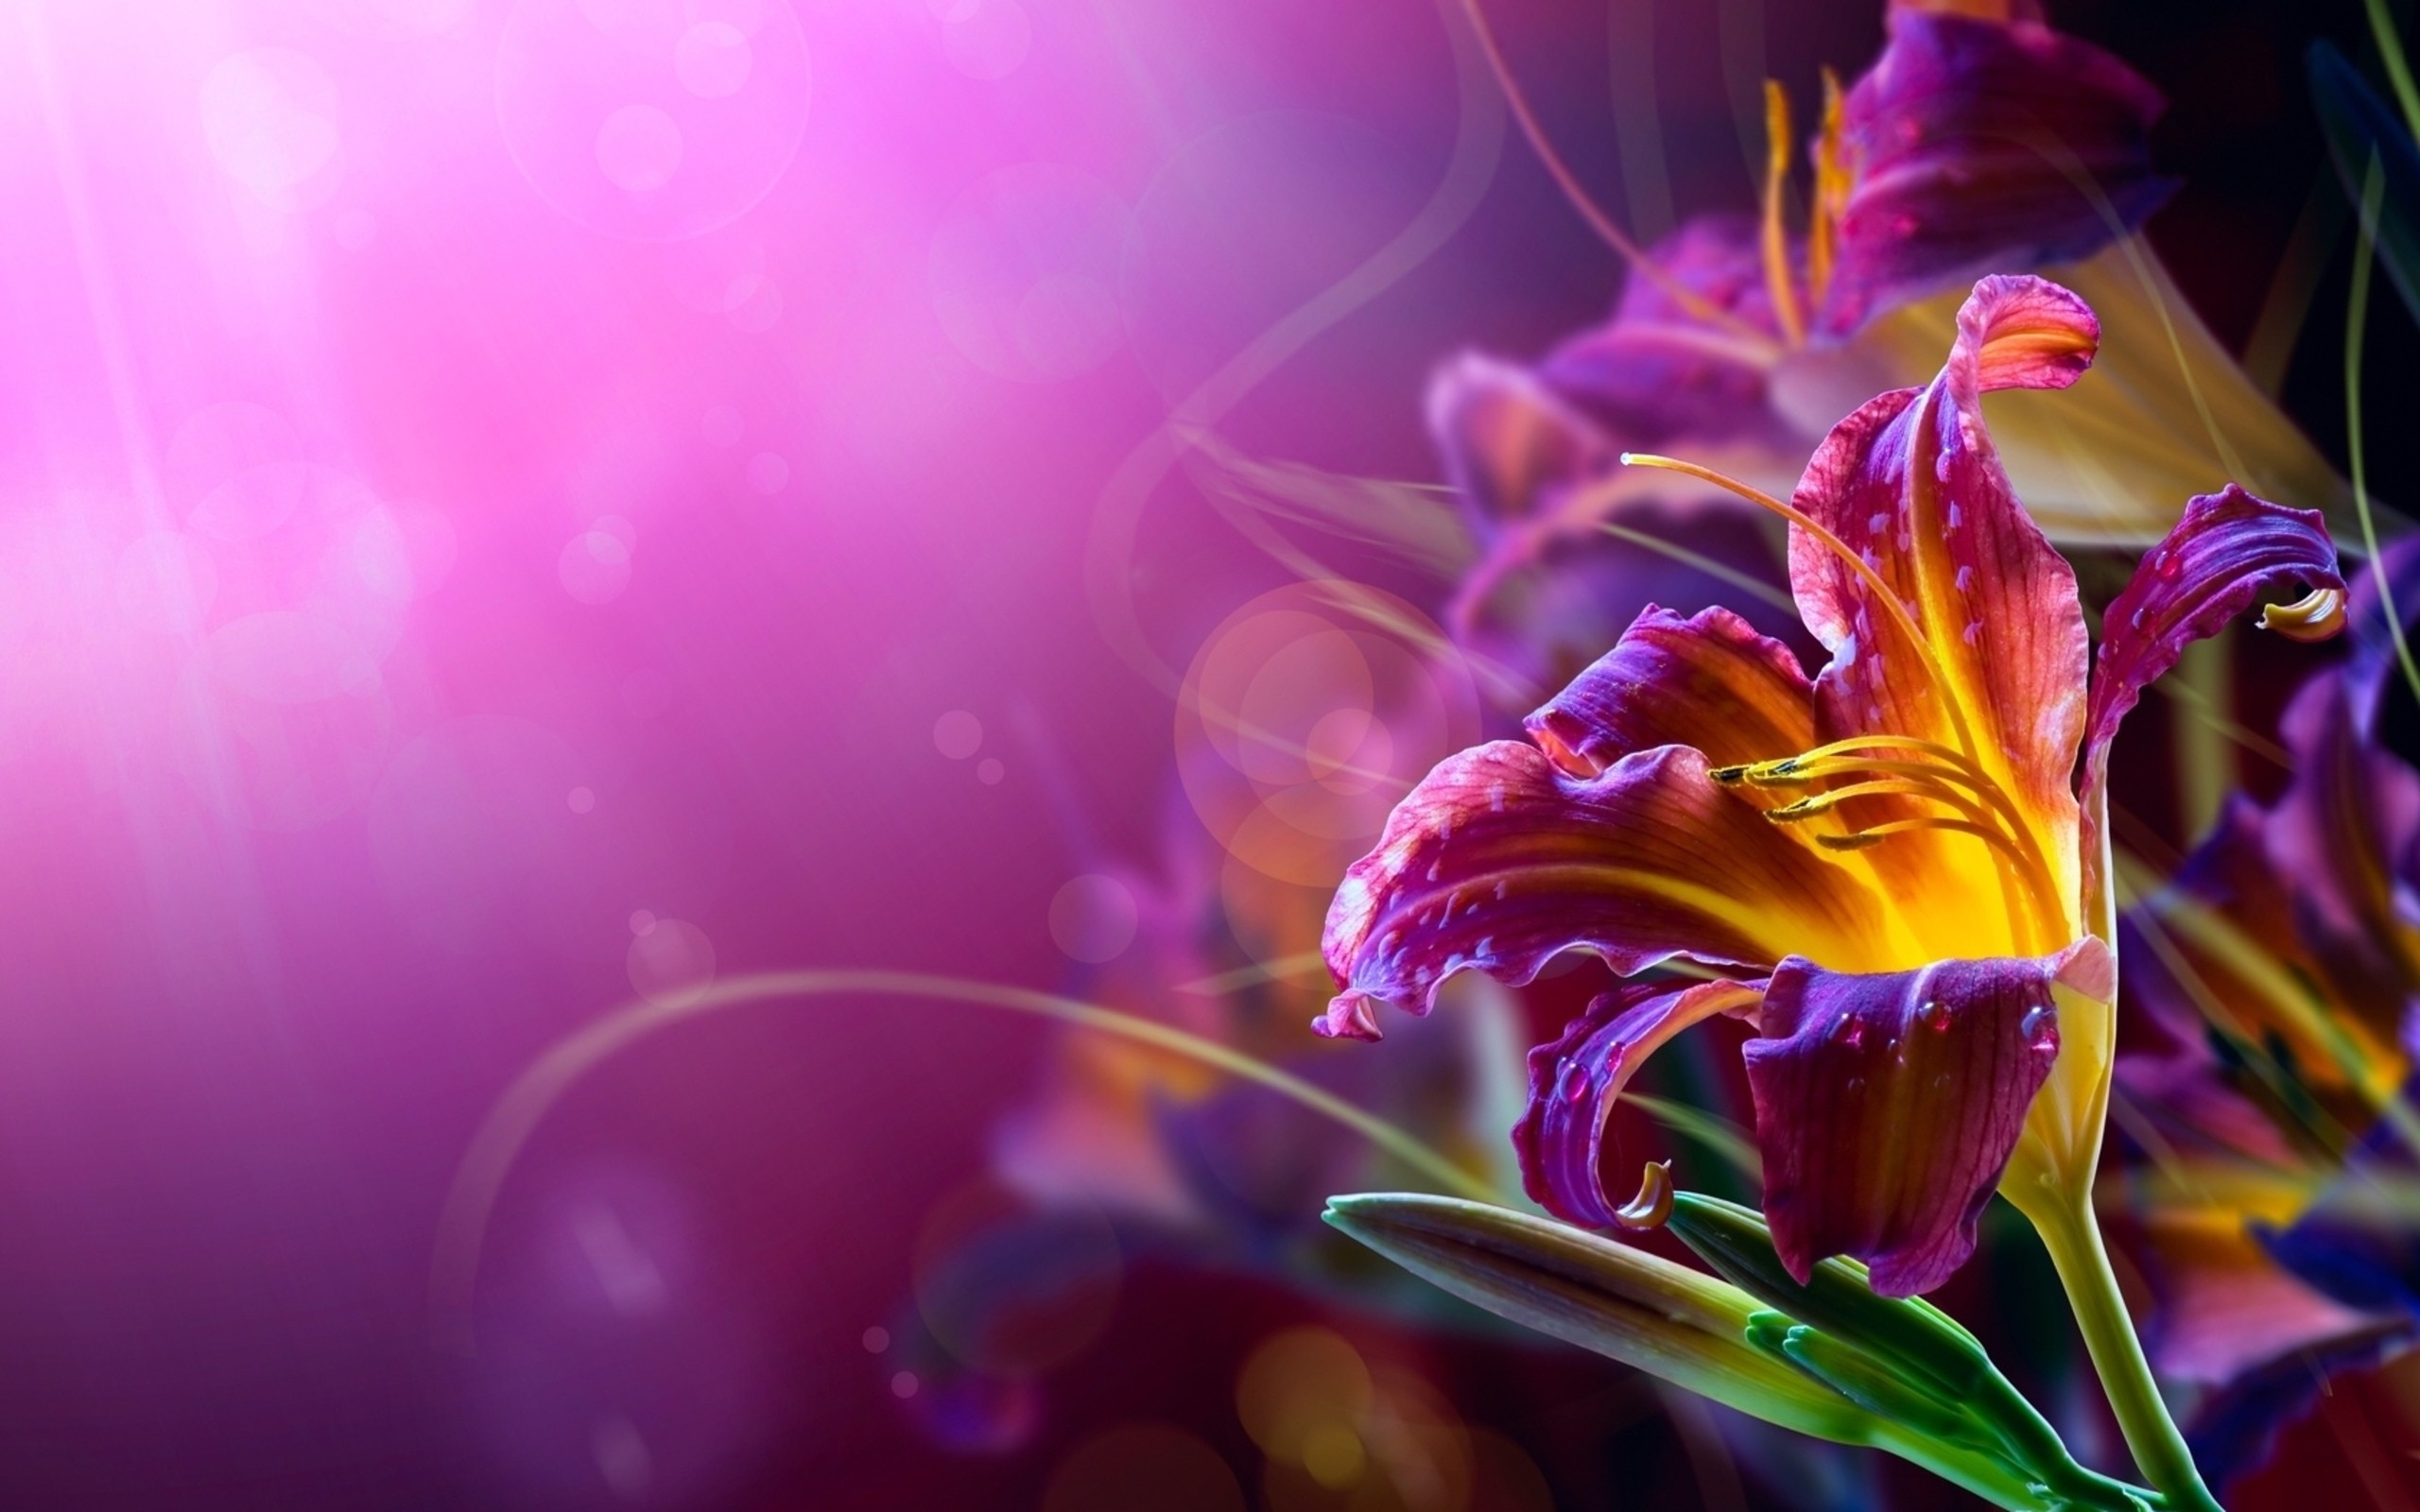 Barbie Hd Wallpapers Free Download Abstract Flower Hd Wallpaper